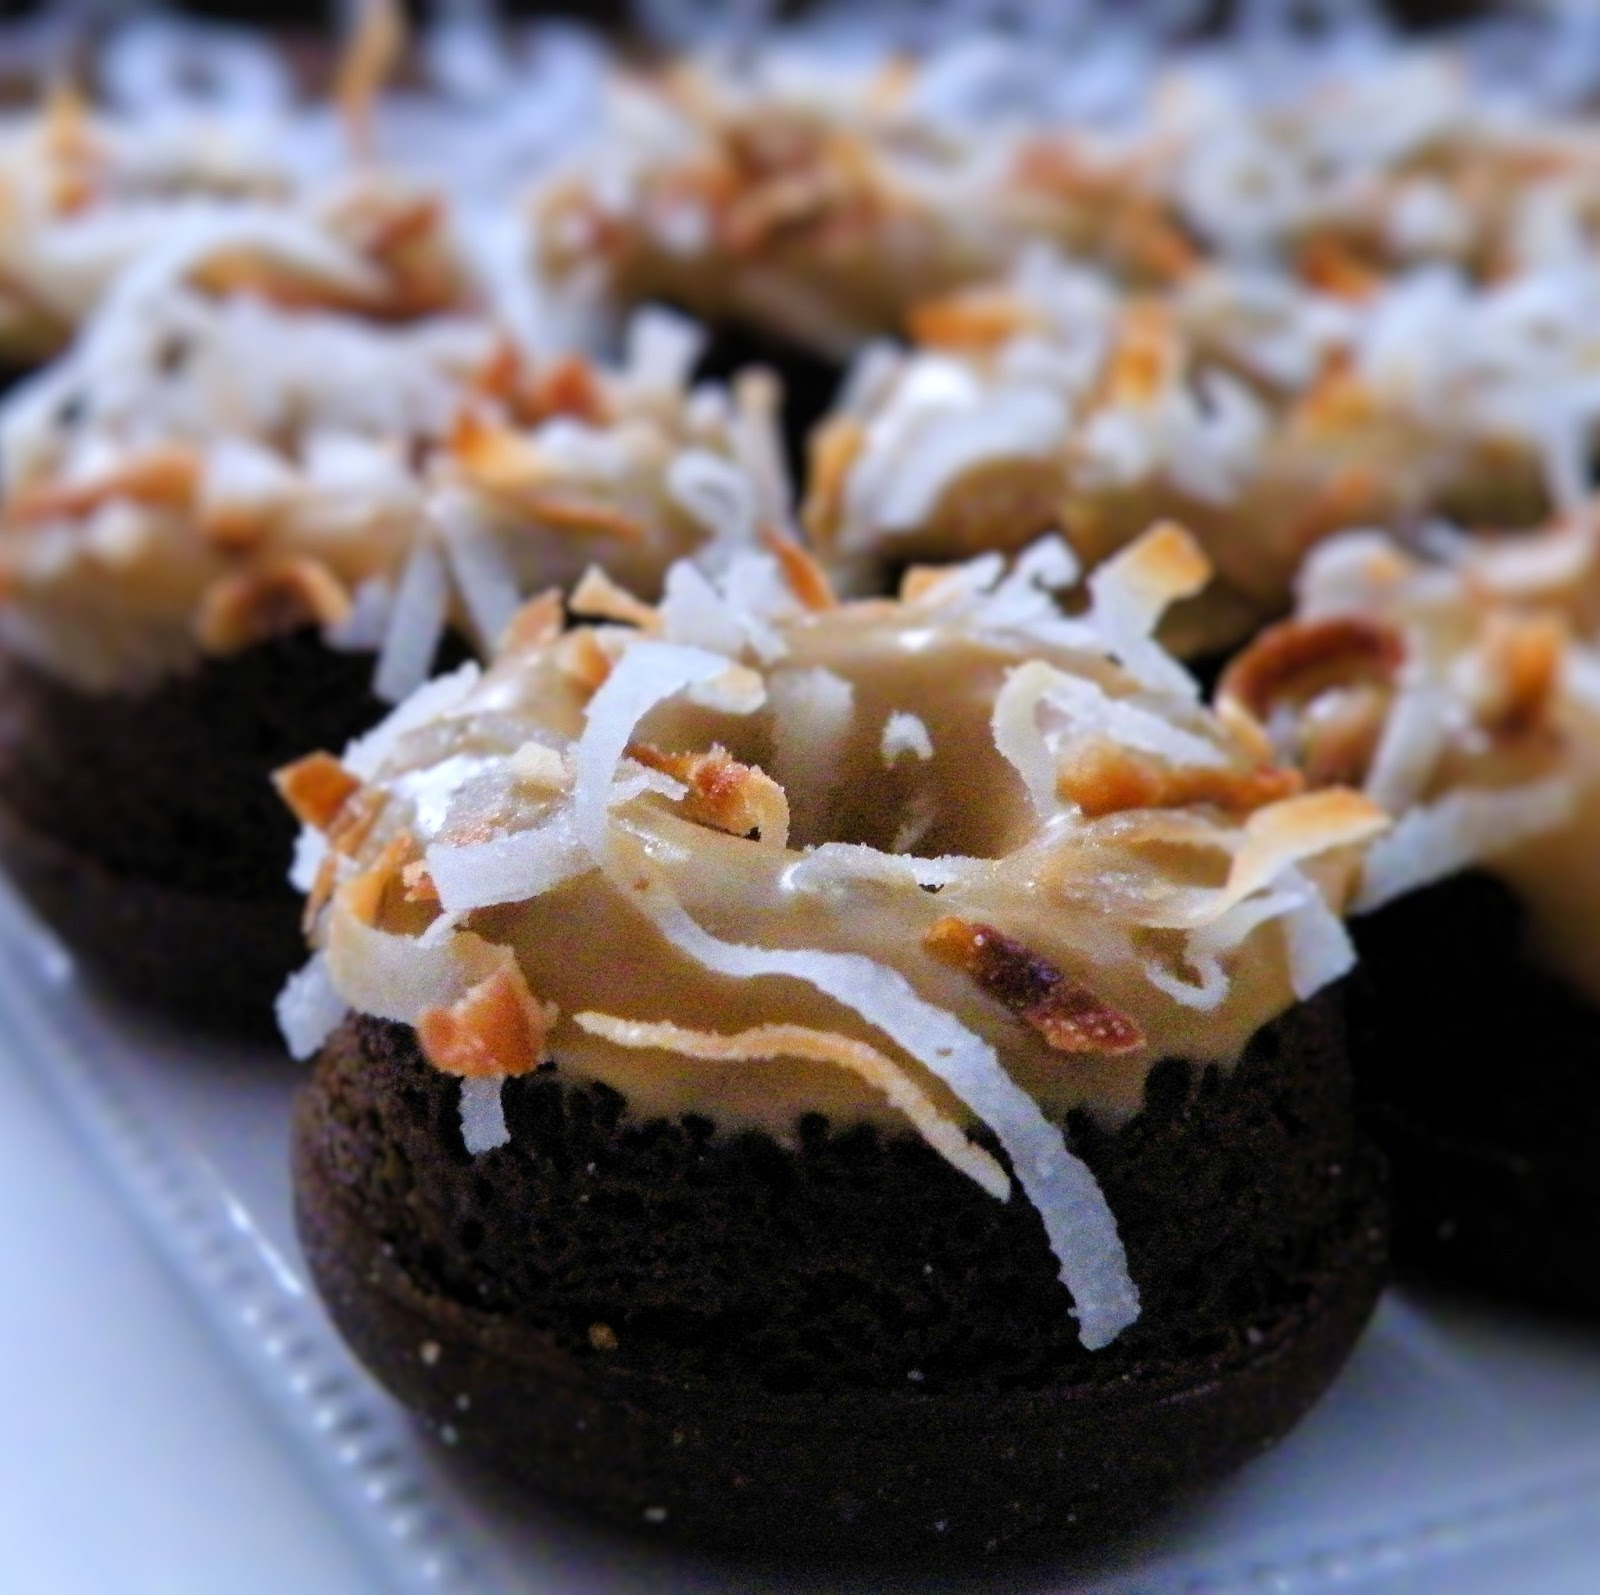 Vittles and Bits: Baked Chocolate Coconut Coffee Donuts